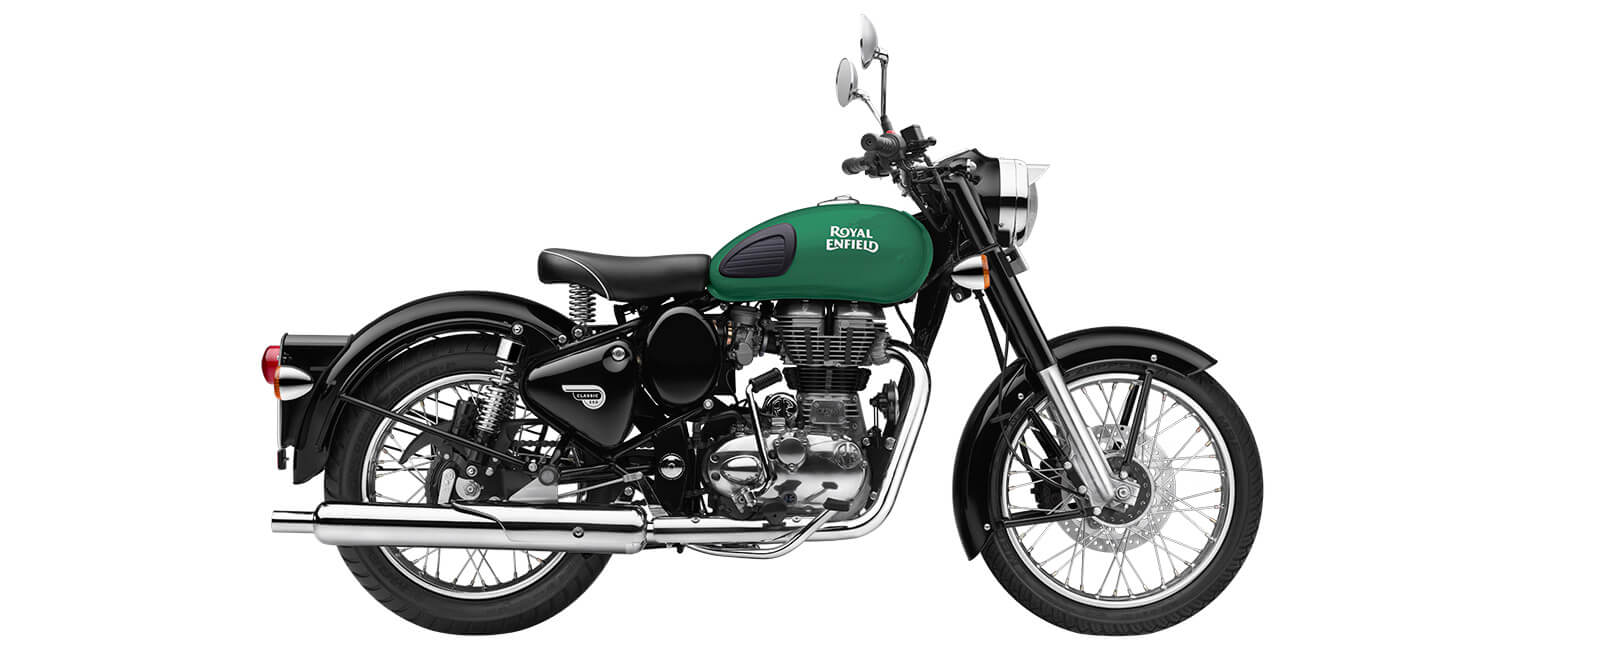 Royal Enfield Classic 350 Redditch for sale in Gold Coast